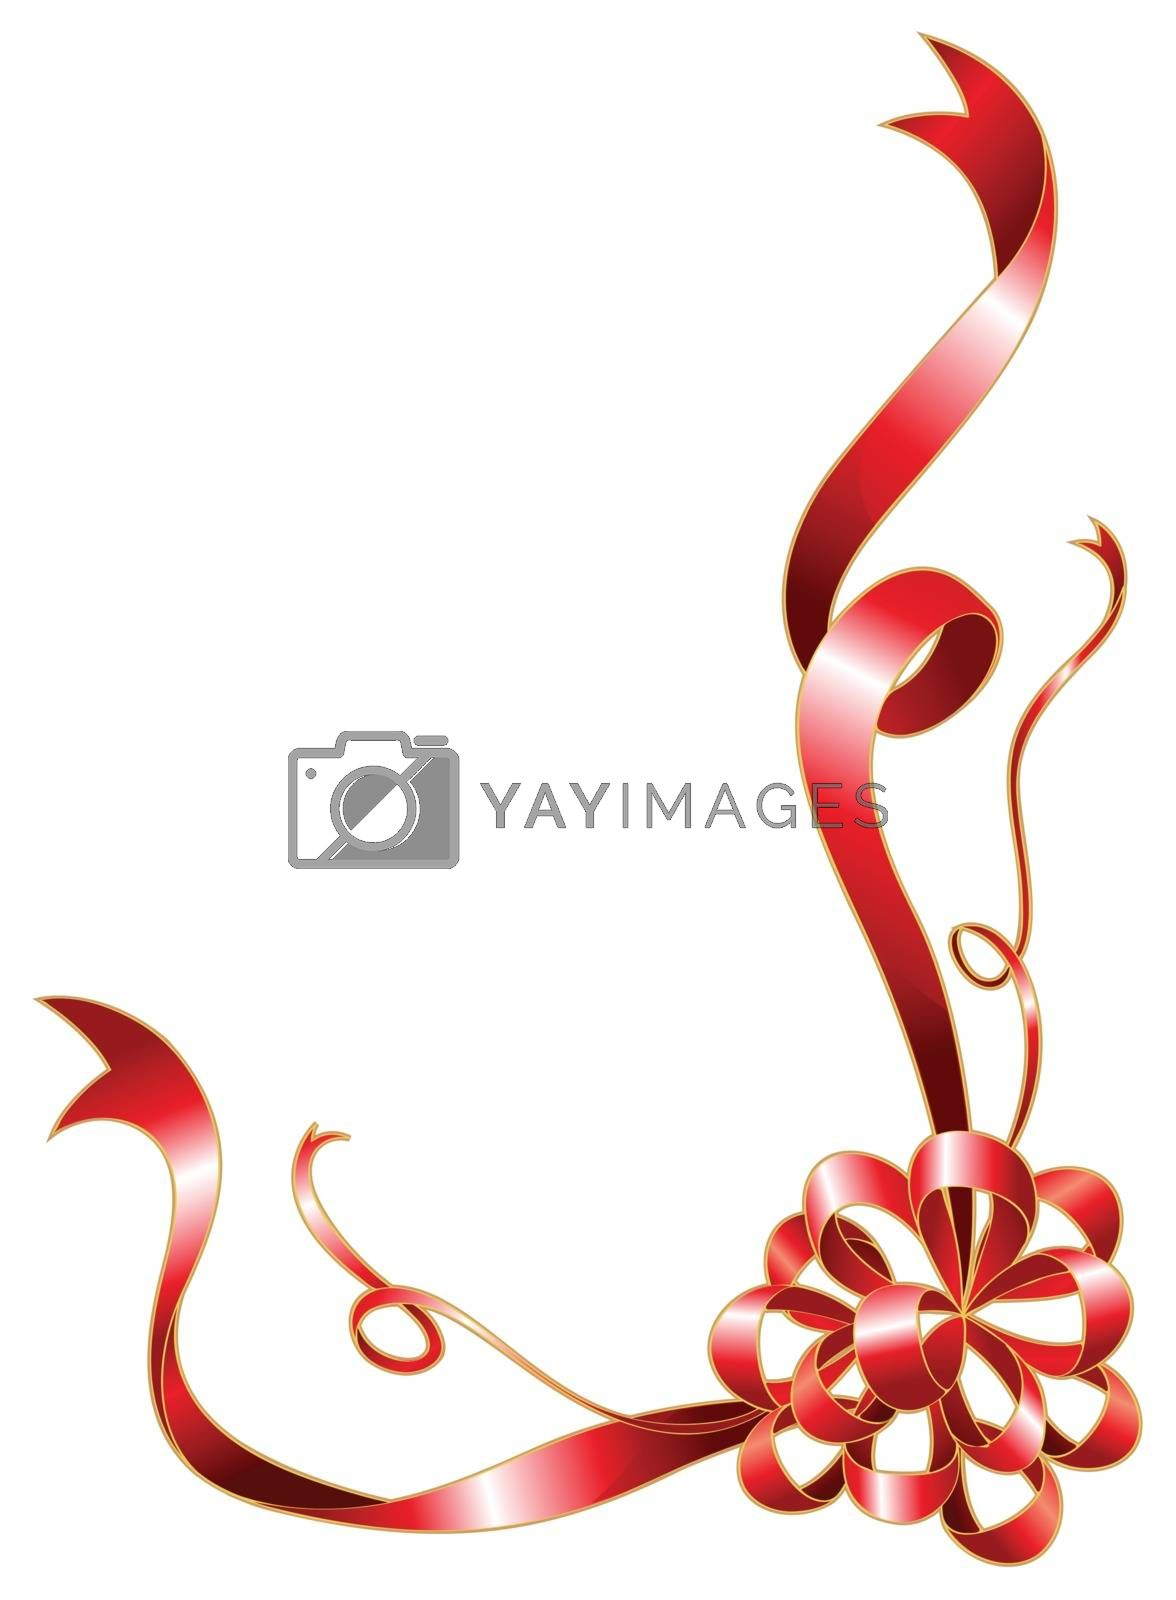 Ribbon illustration on white background